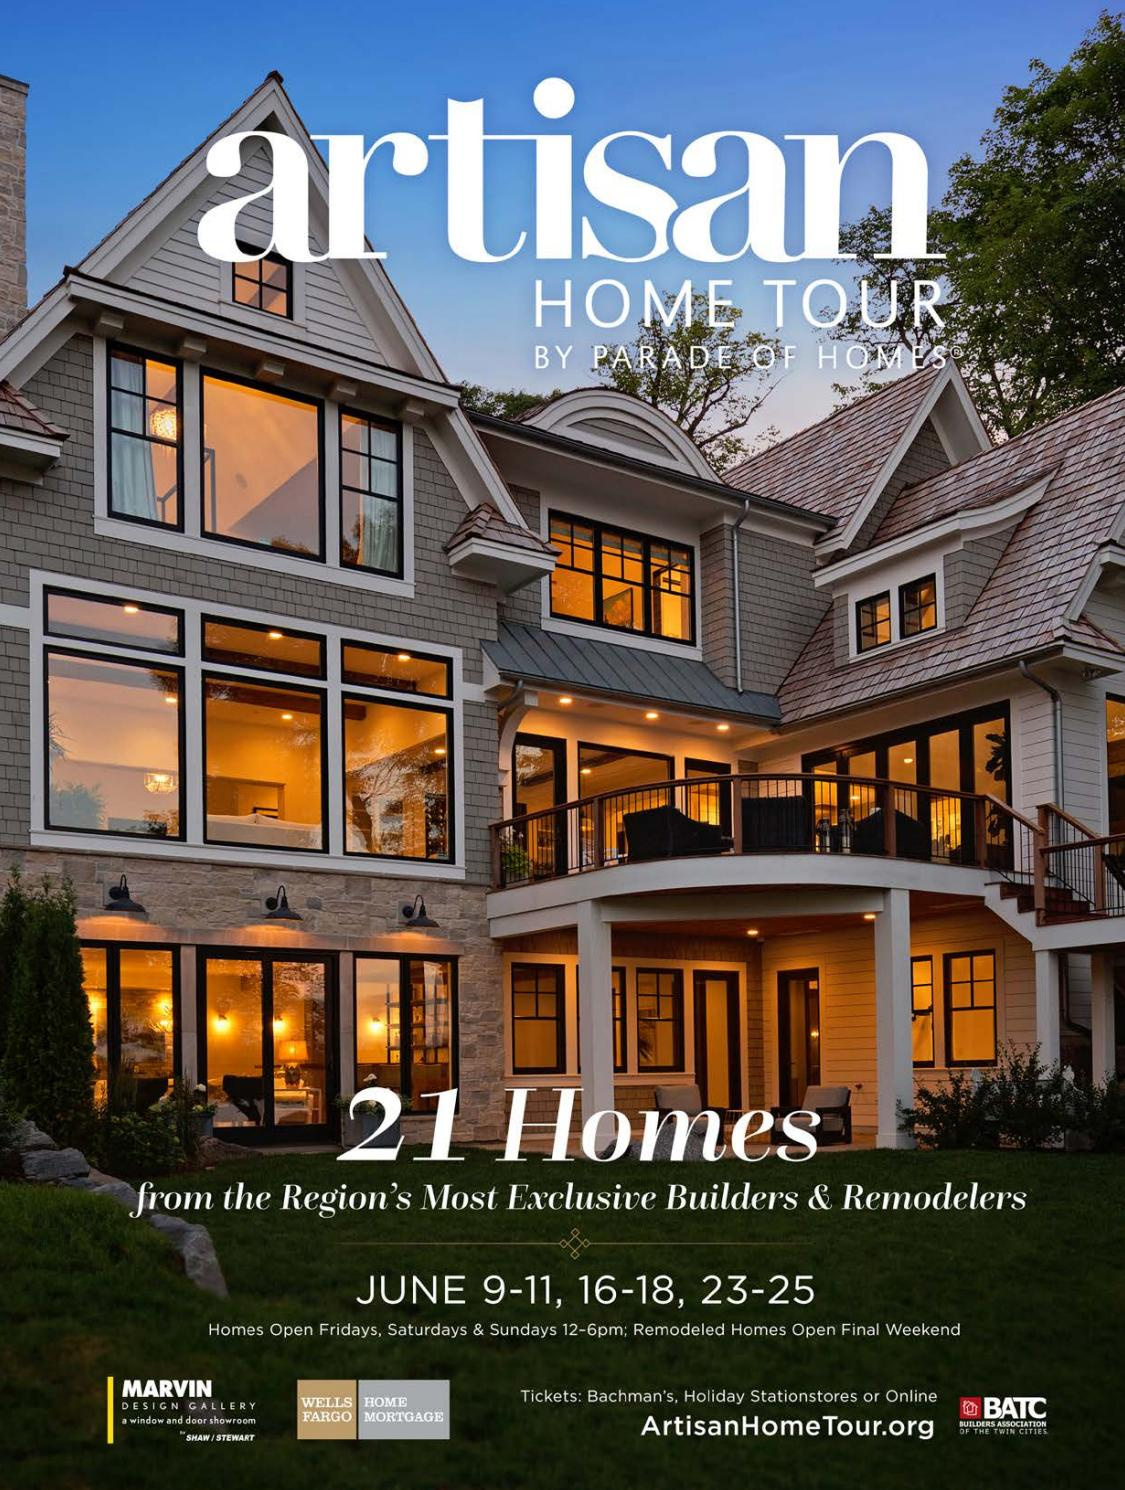 Artisan Home Tour by Parade of Homes® 2017 Guidebook by ... on contemporary house exterior designs, rambler with front of garage, ranch house exterior designs, colonial home exterior designs, custom house exterior designs, split level house exterior designs, ivory home designs,